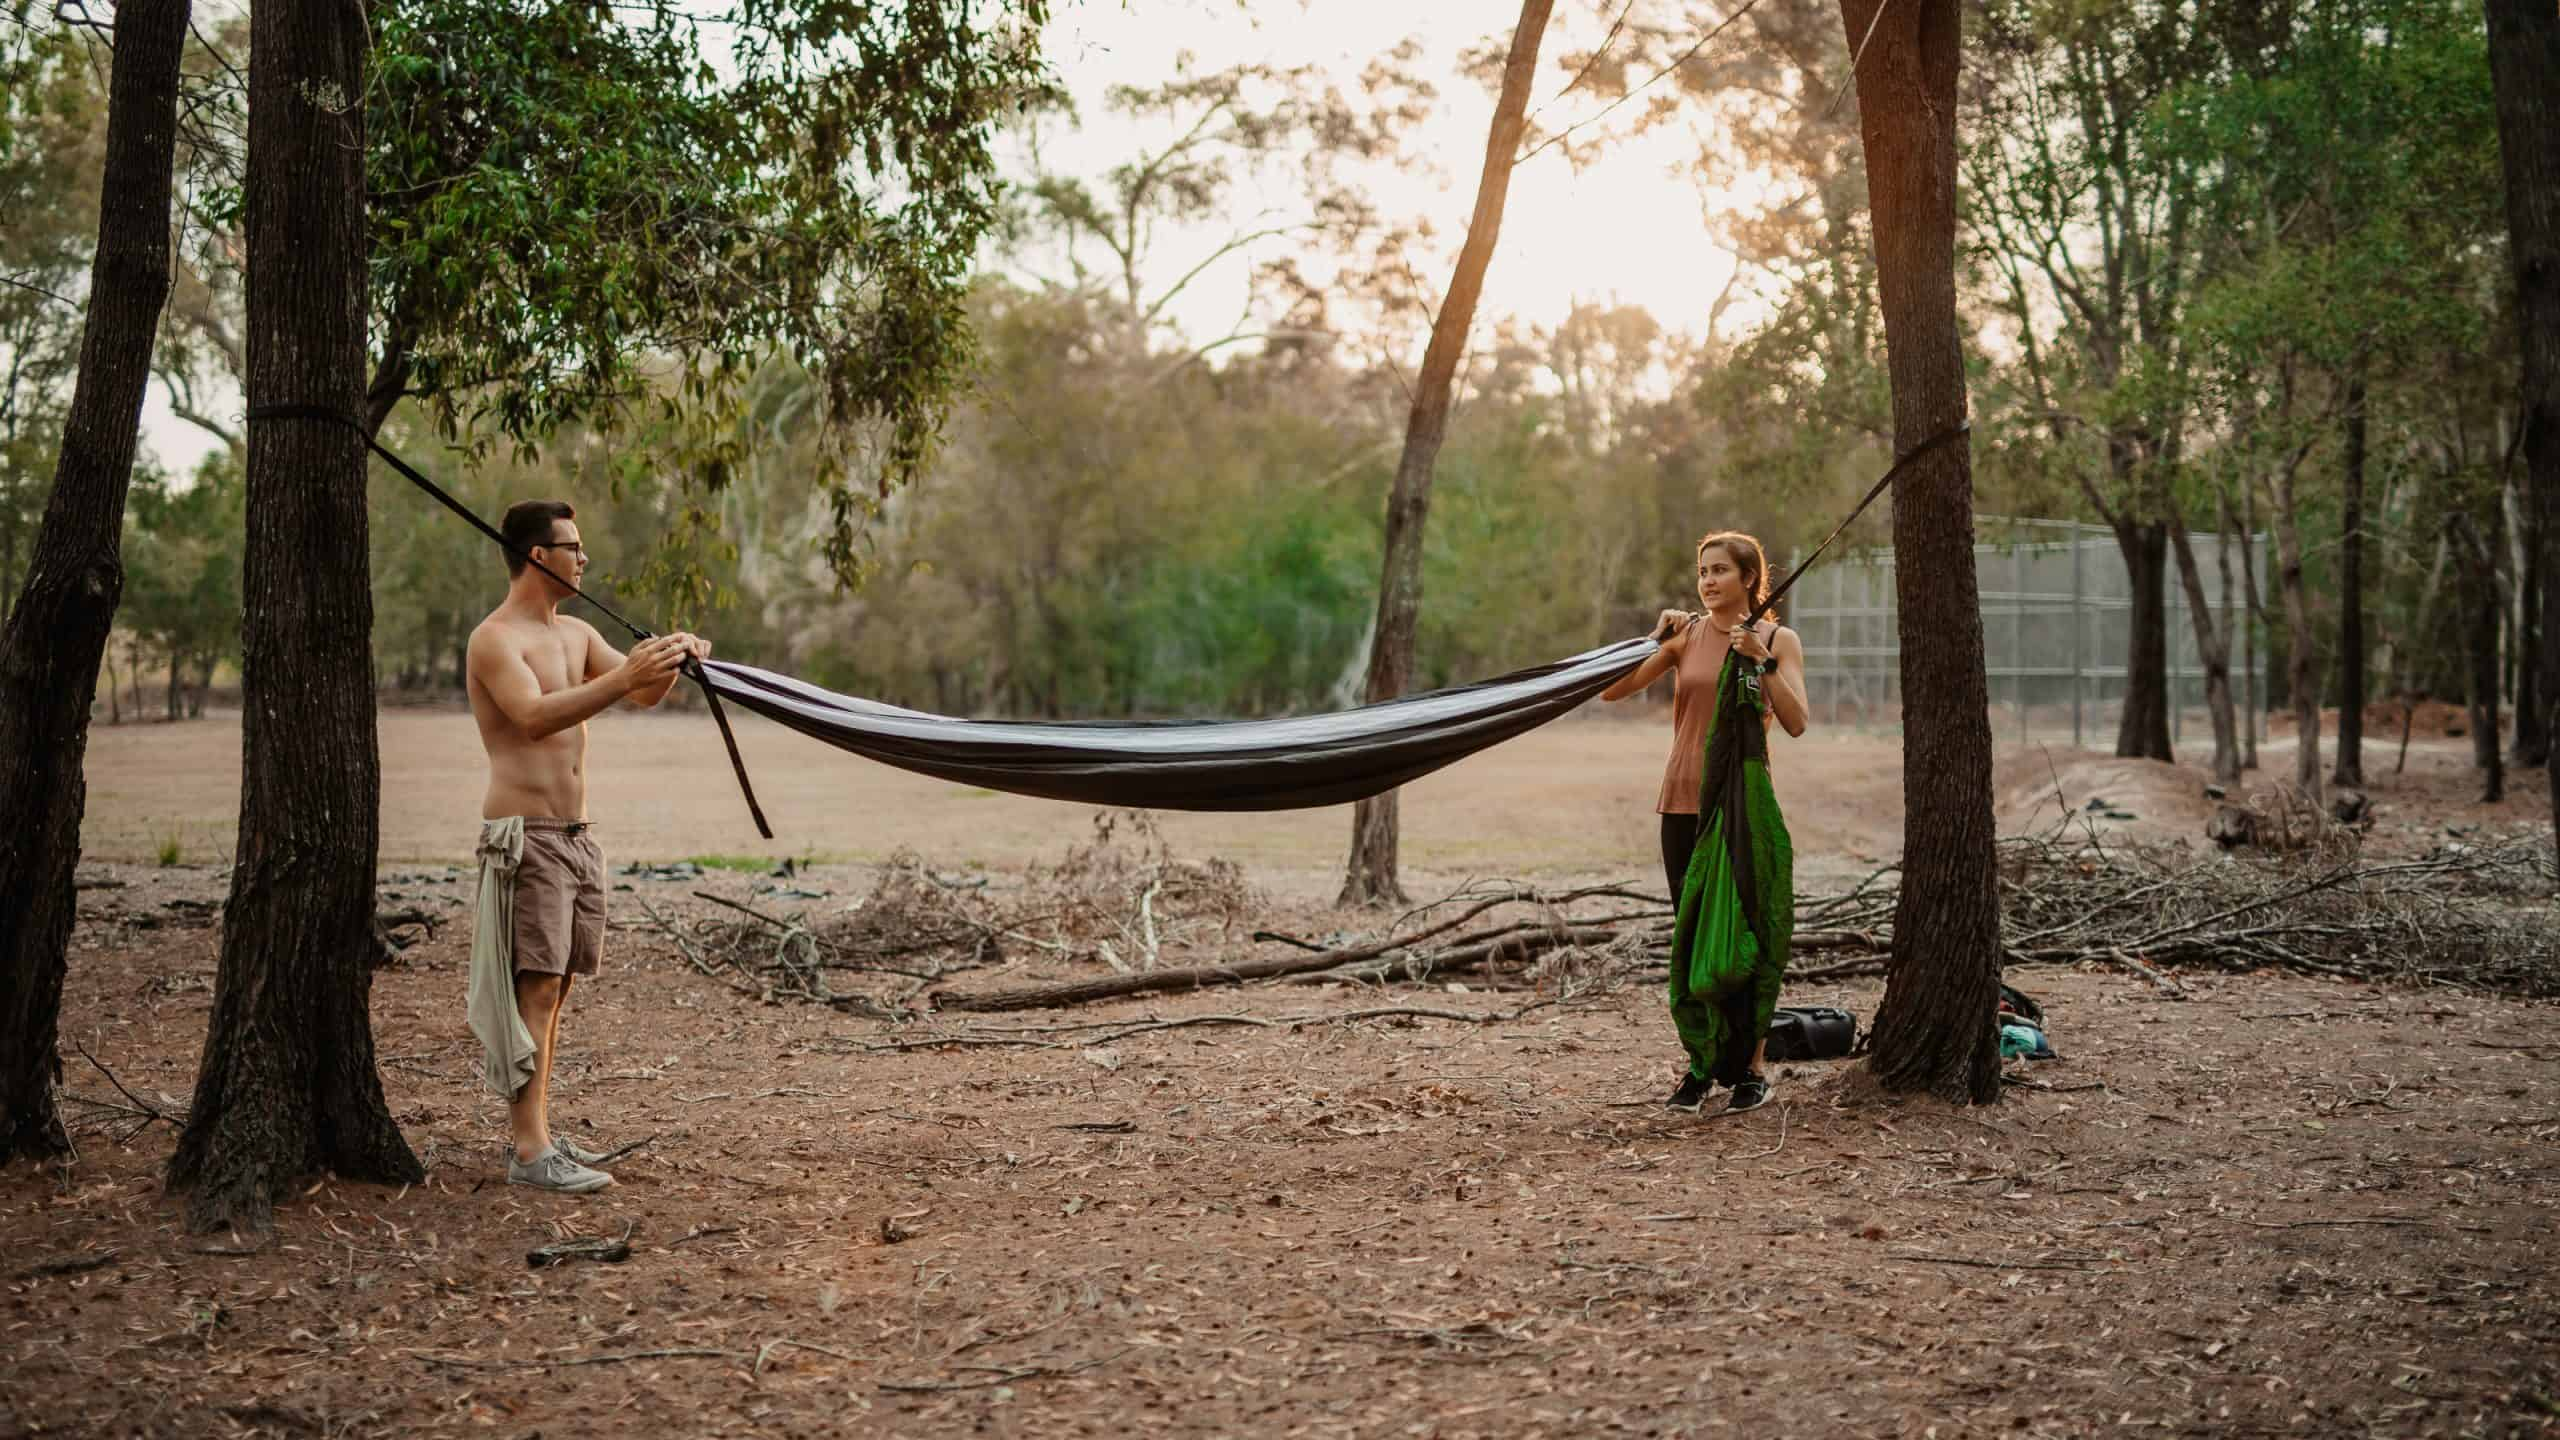 Sleeping in a Hammock with a Partner Image